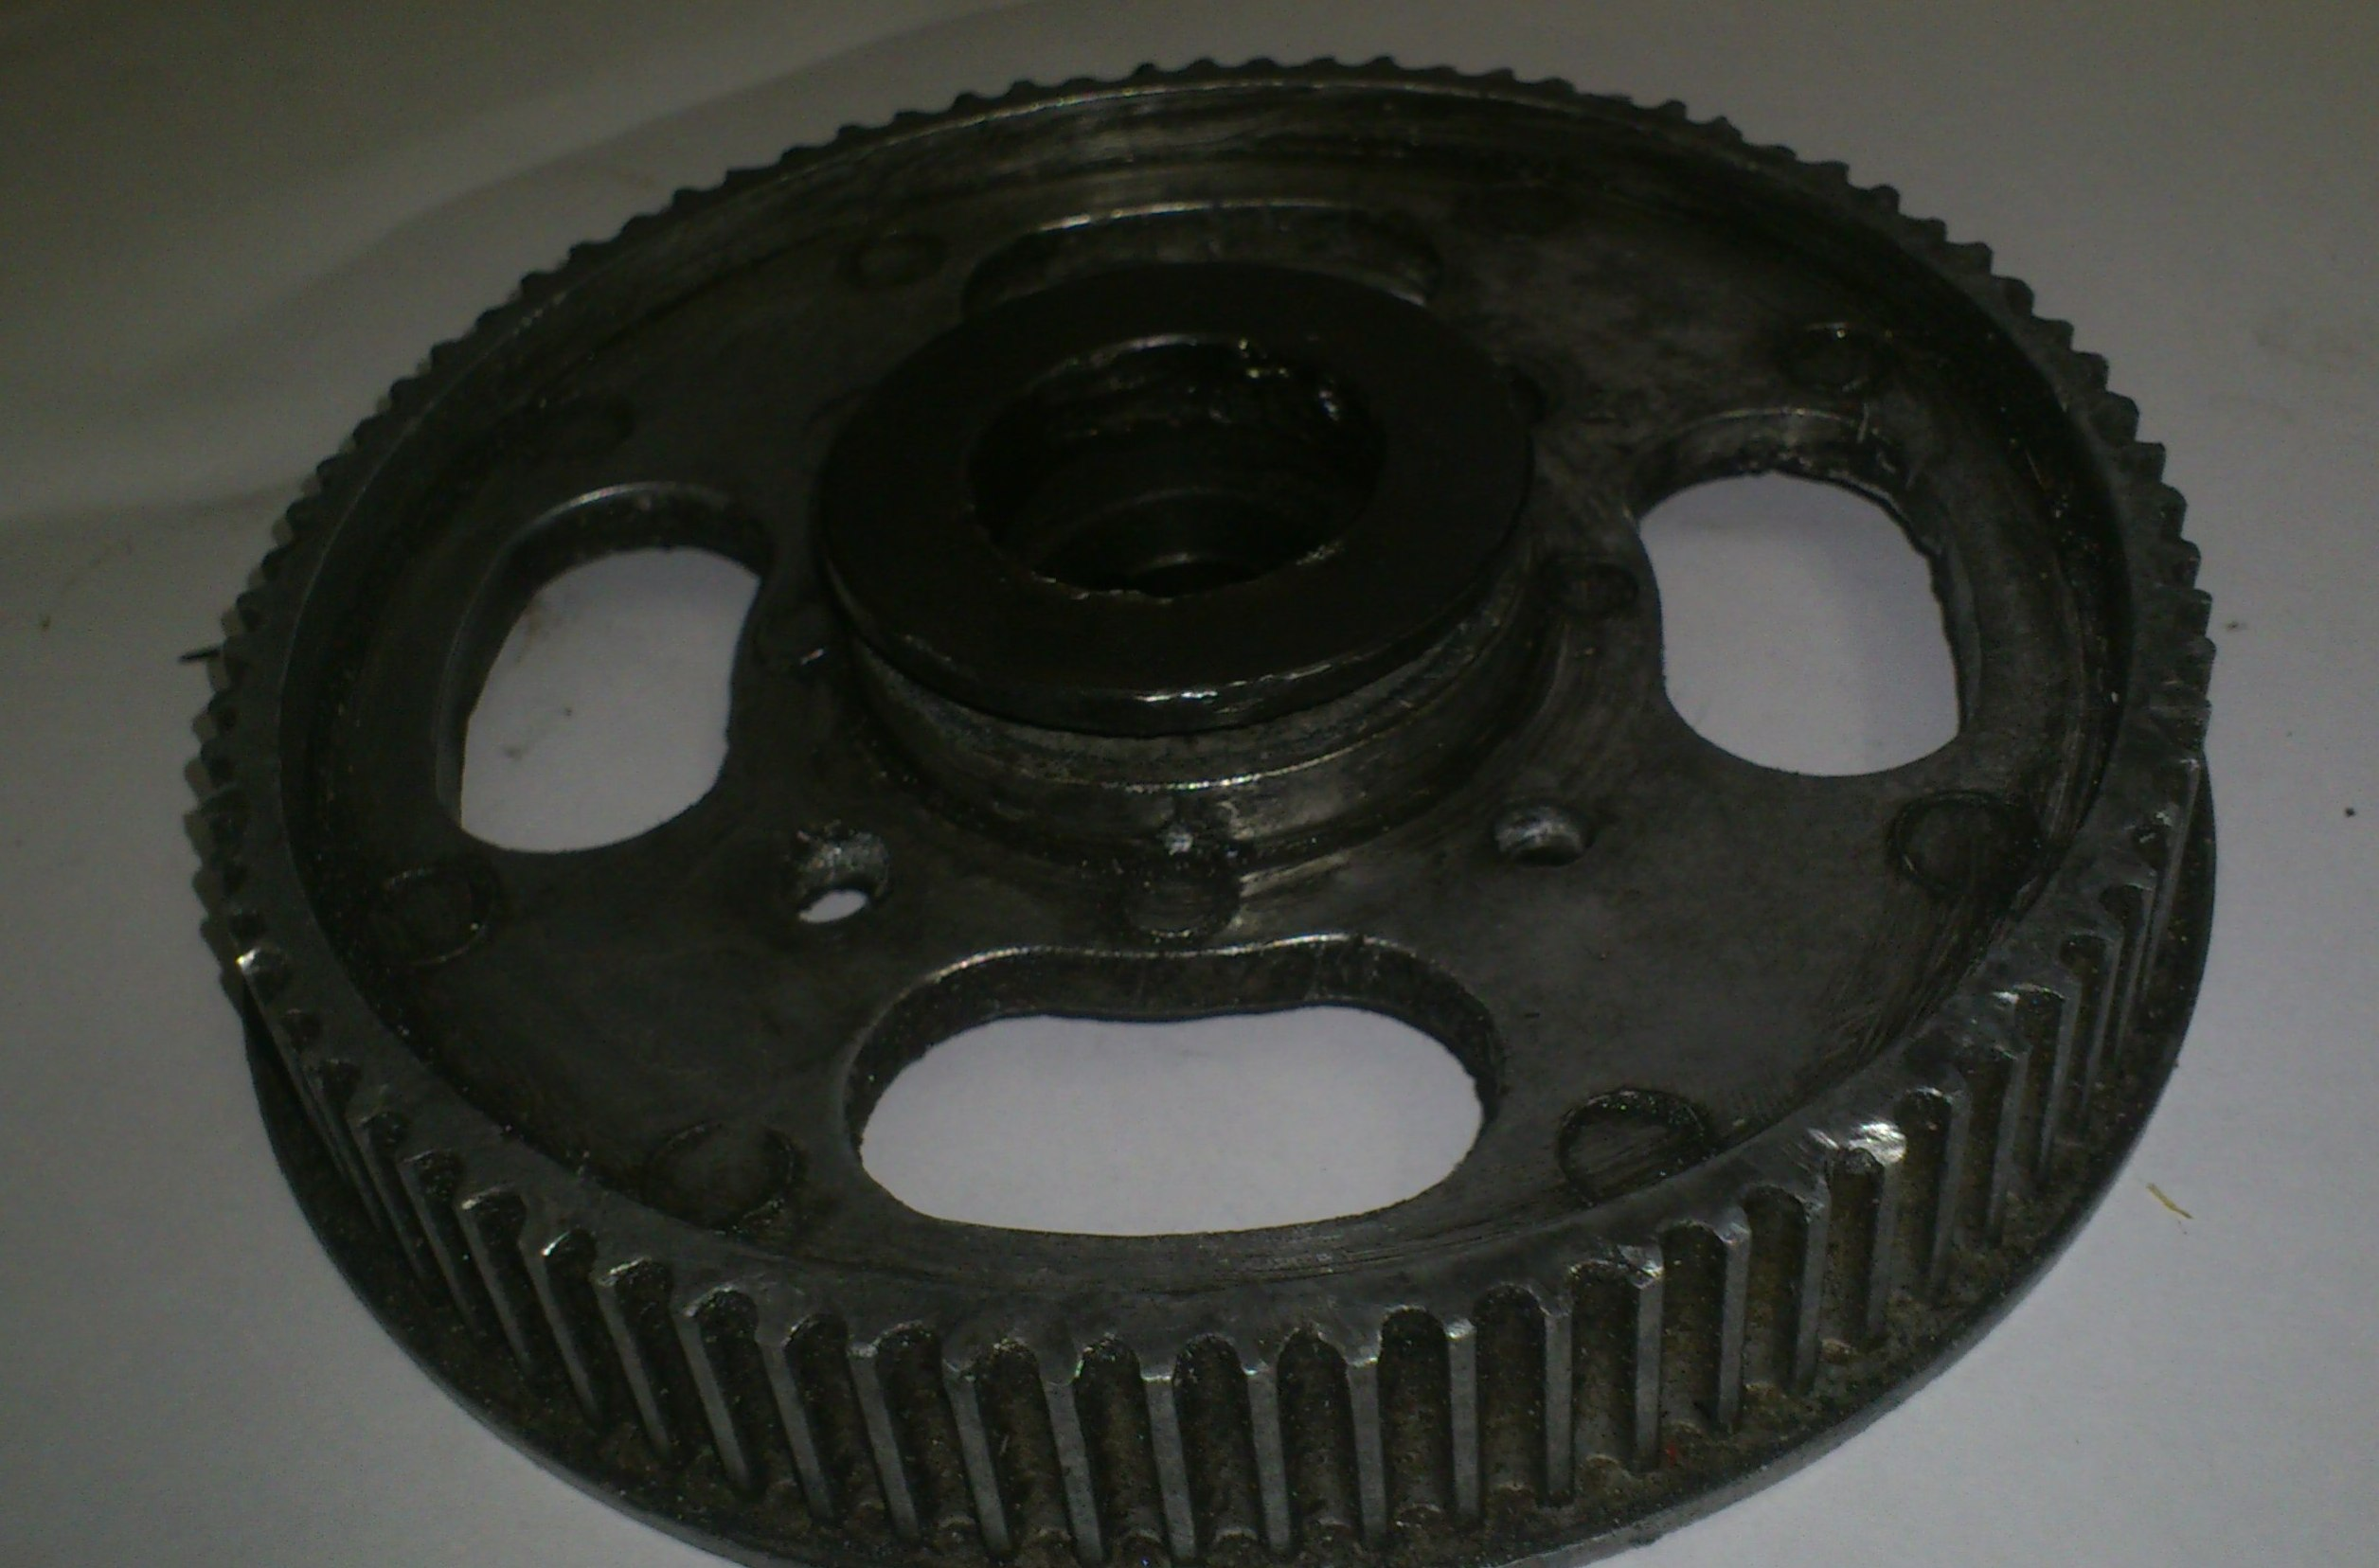 original pulley with the nut